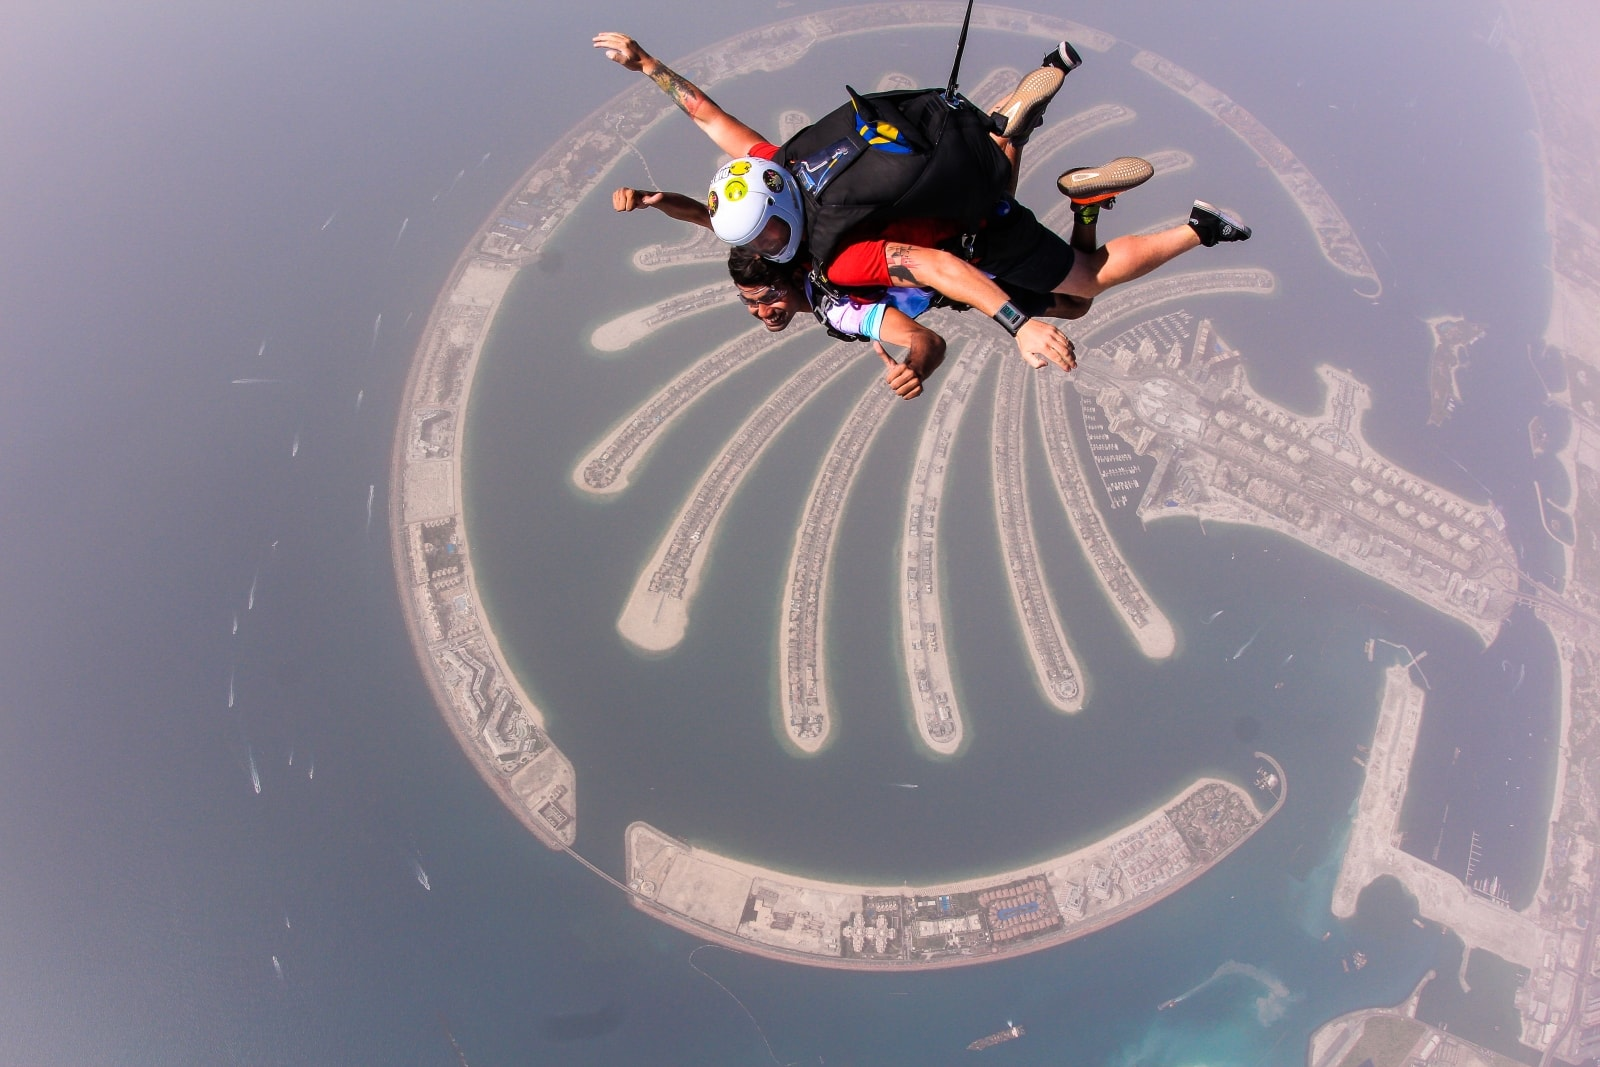 Offbeat Dubai | Dubai attractions | Skydive Dubai